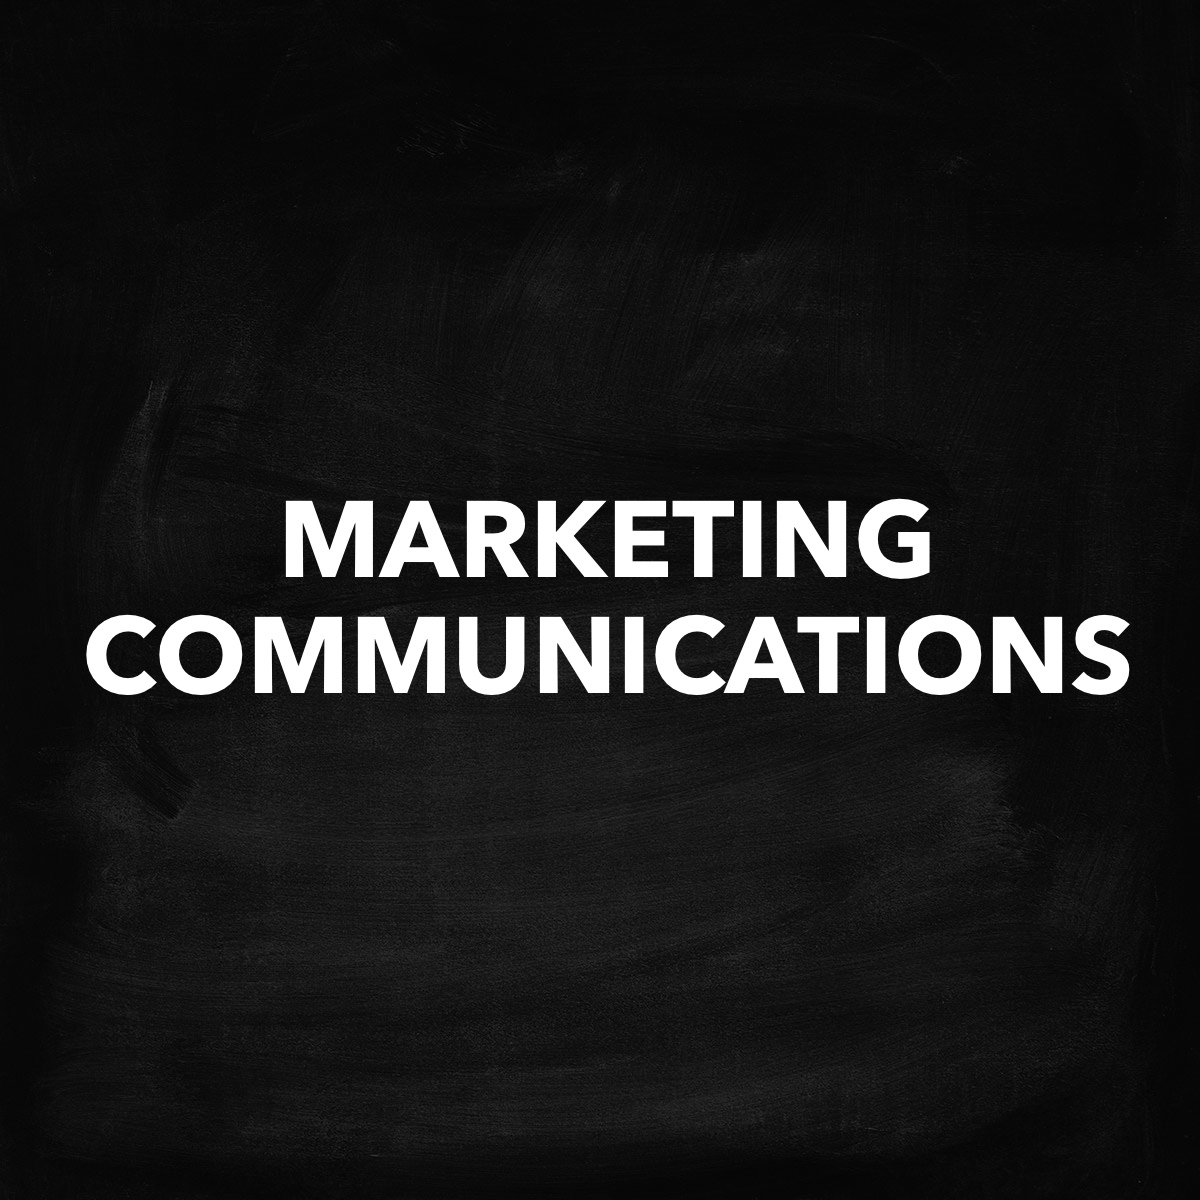 marketing-communications-by-wildmoon